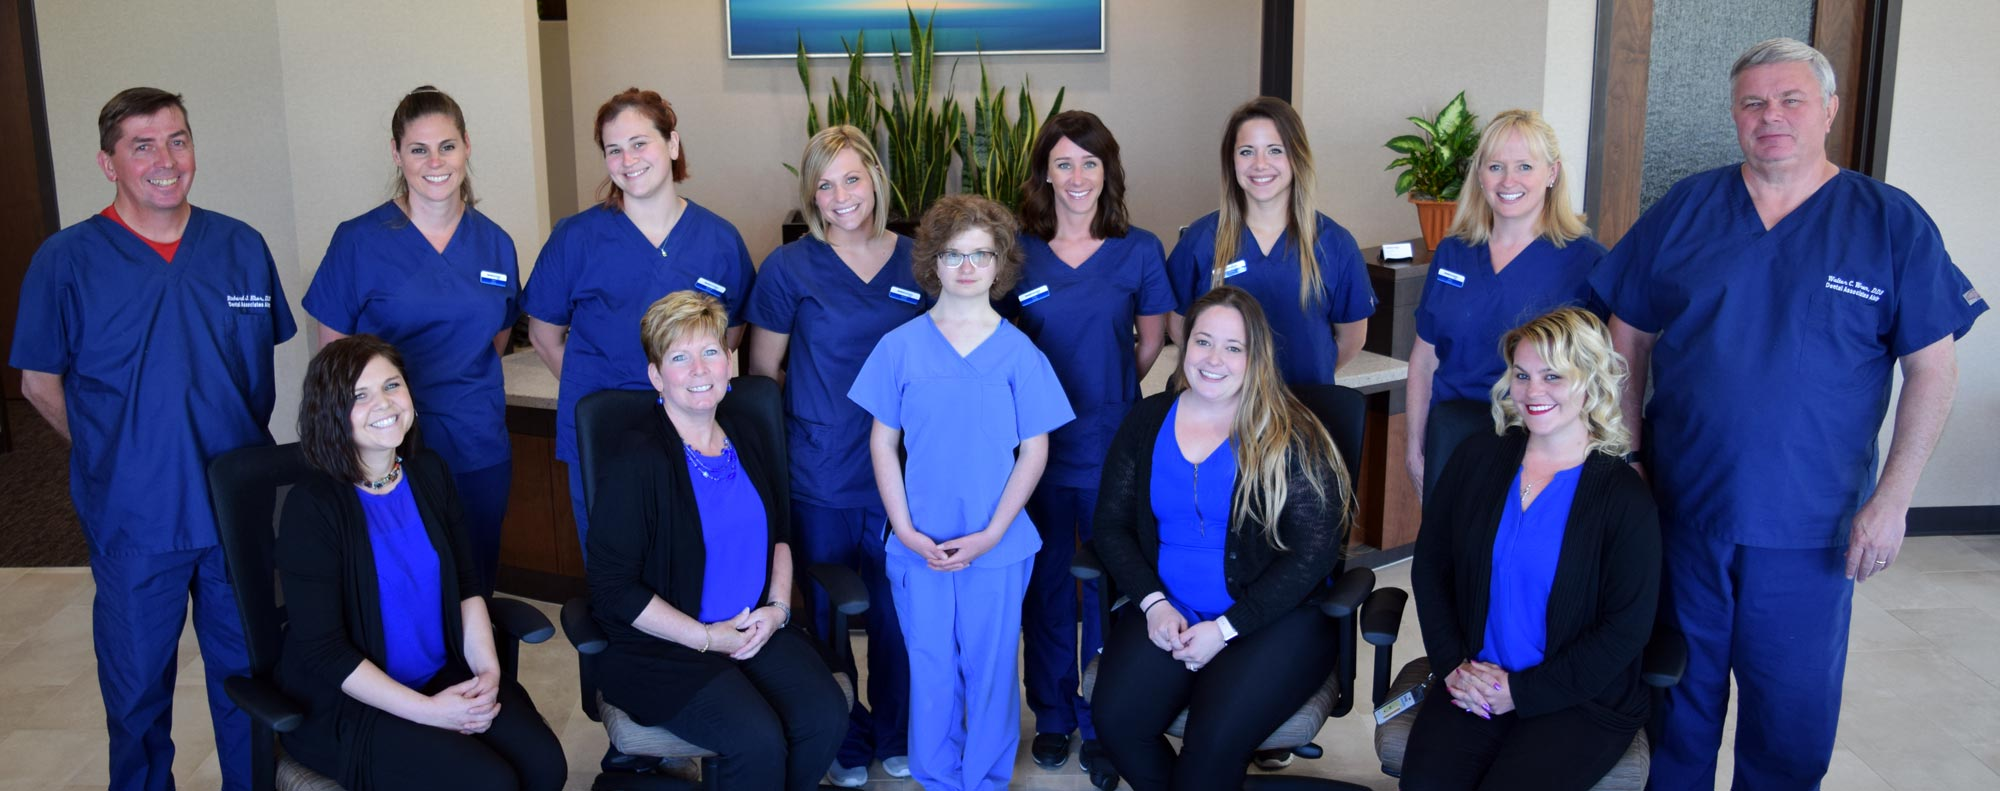 Meet the Dental Associates Alsip team